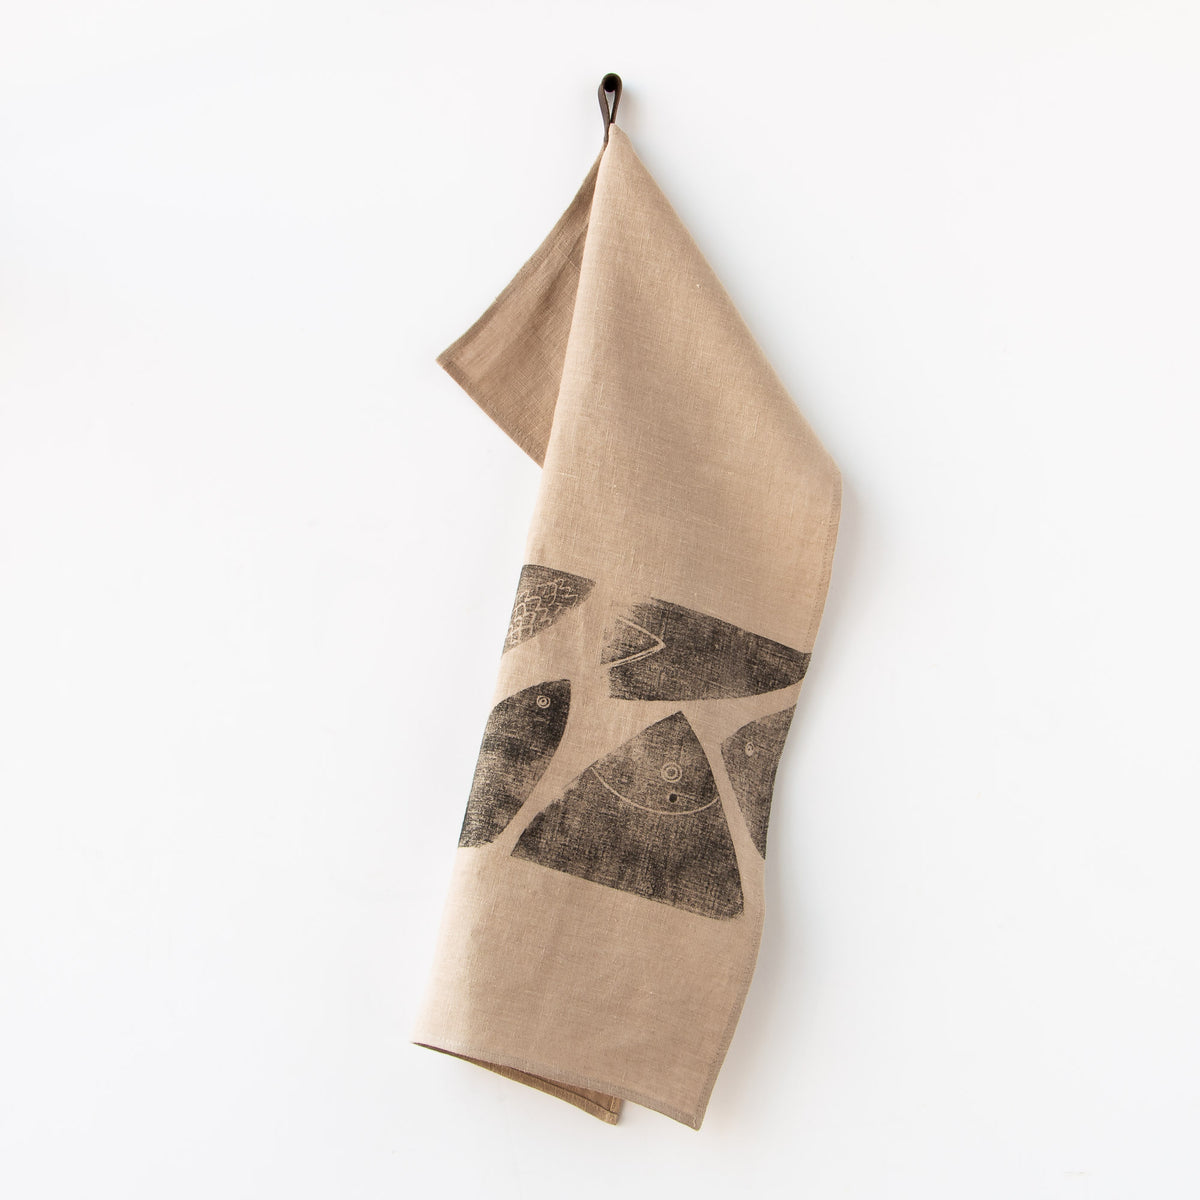 Gone Fishing - Handprinted 100% Linen Dish Cloth / Hand Towel - Sold by Chic & Basta